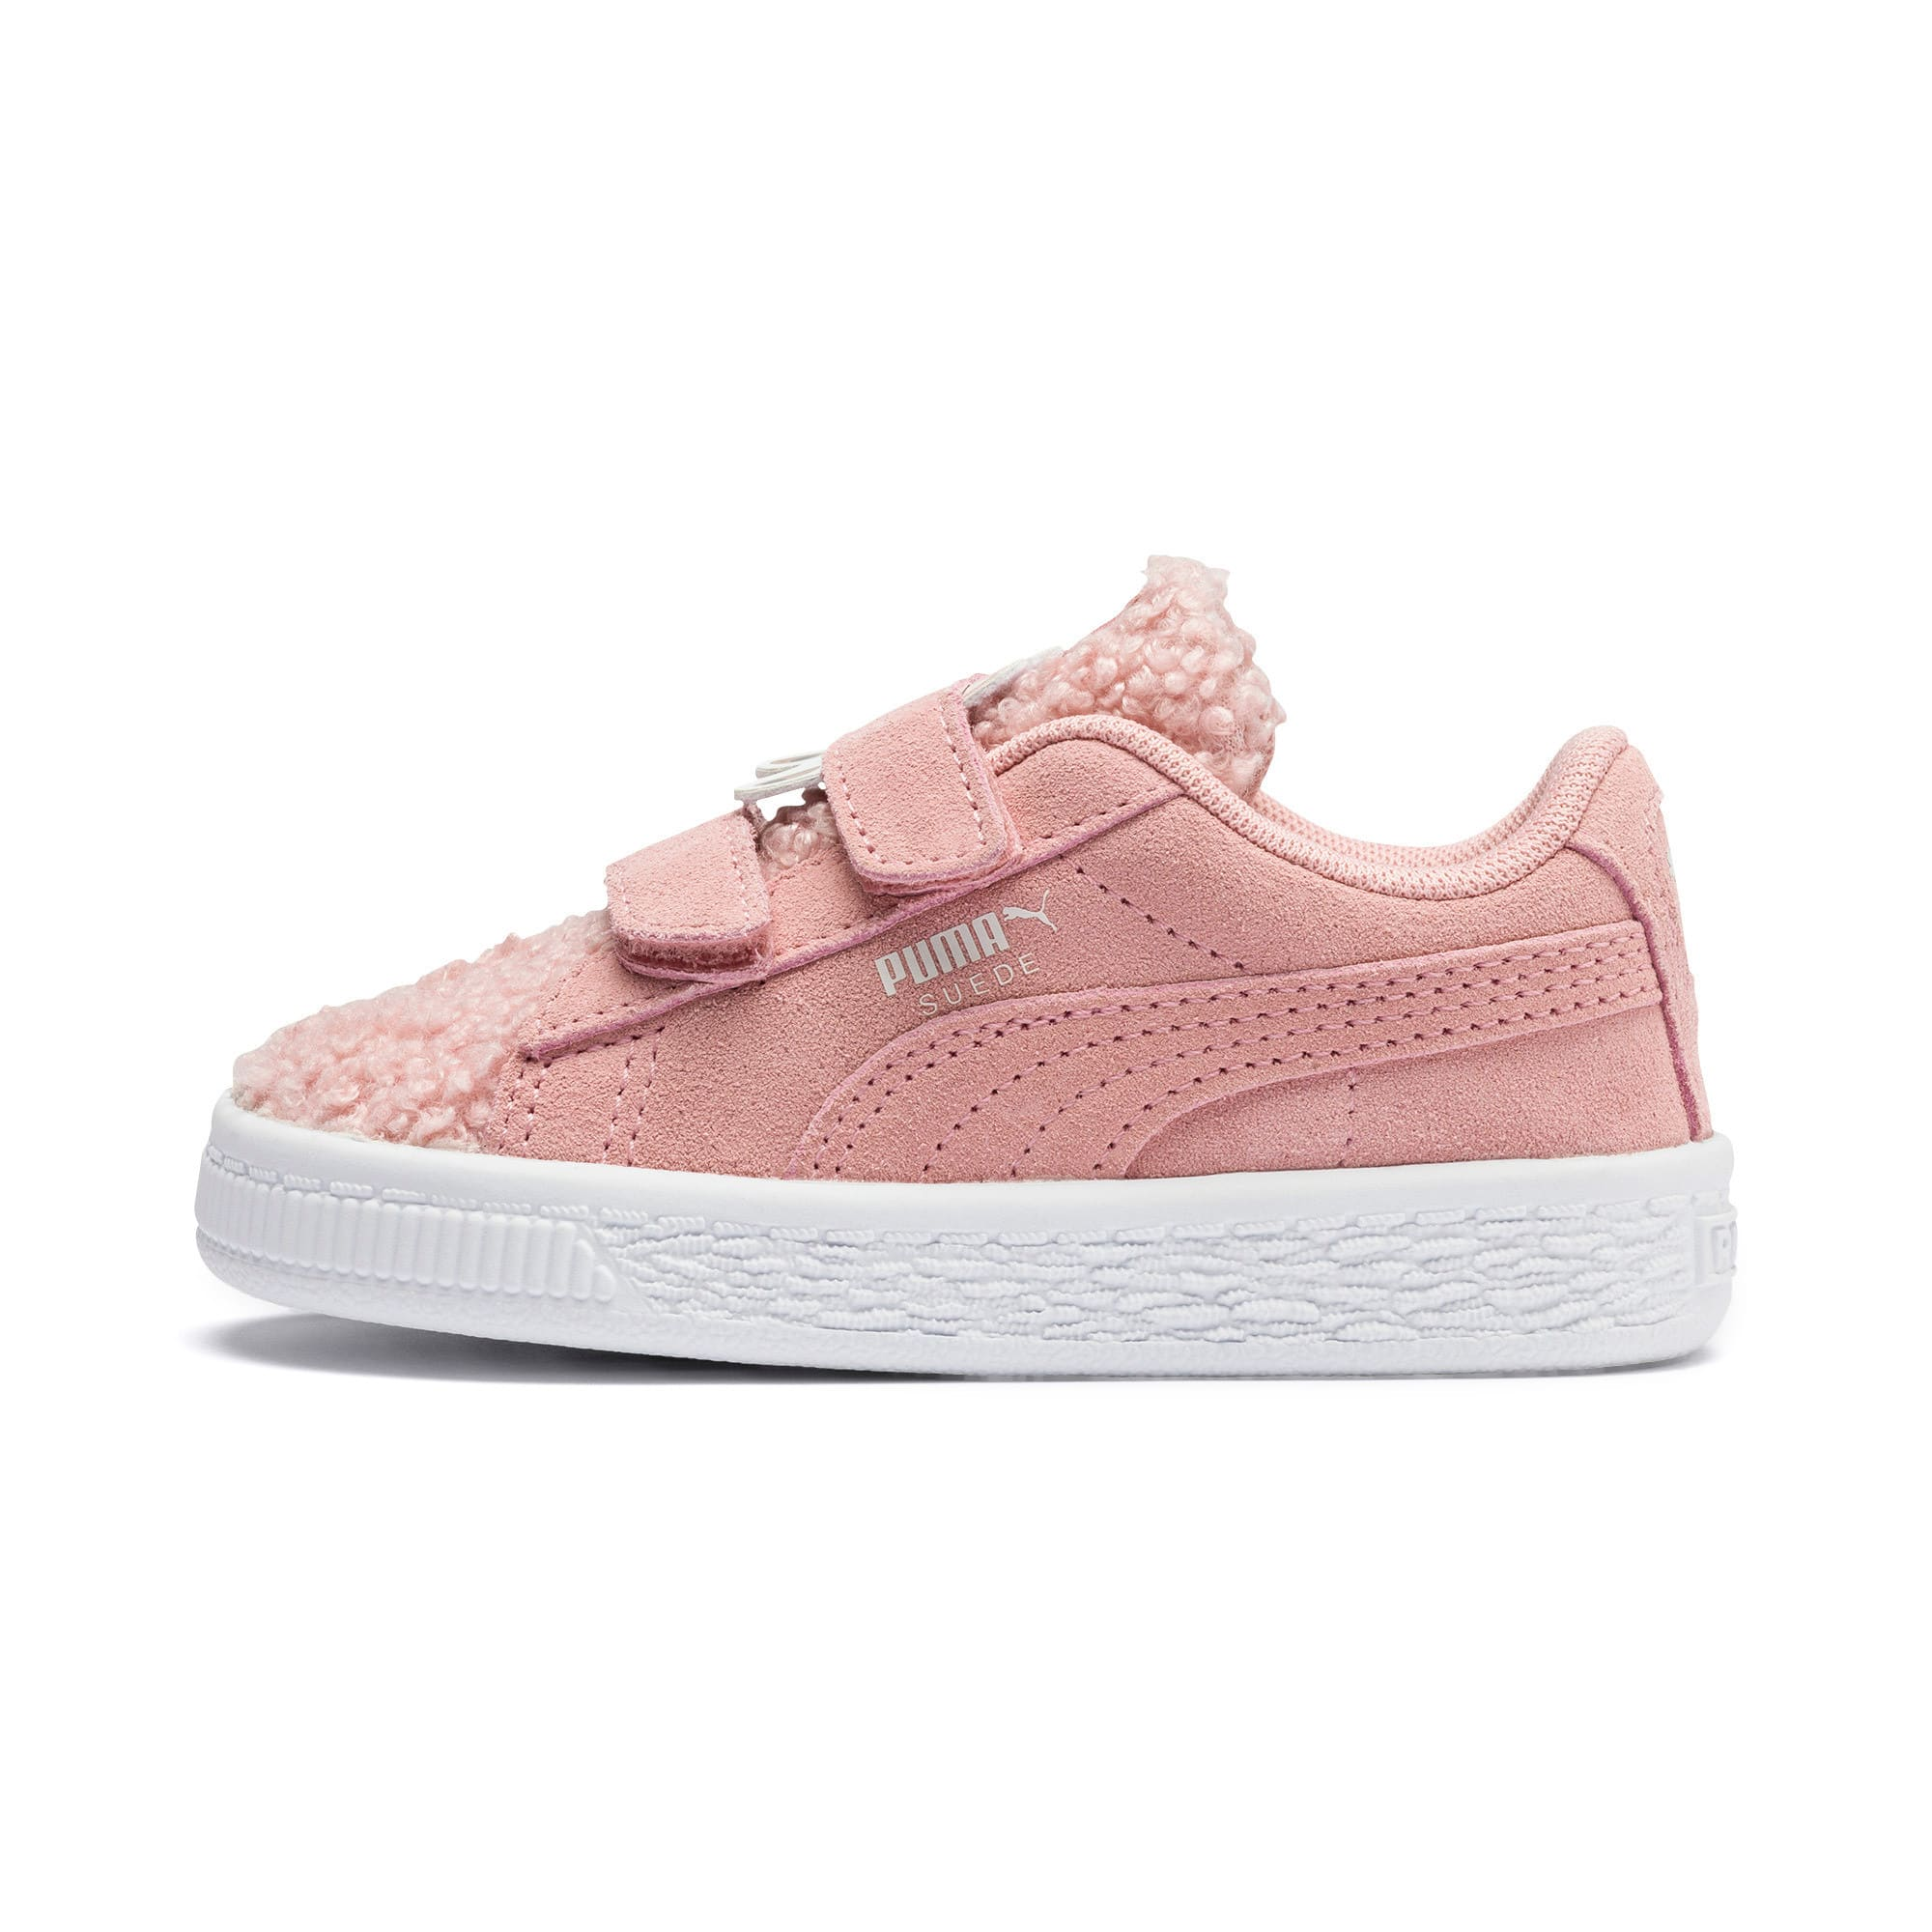 Thumbnail 1 of Suede Winter Monster Babies' Trainers, Bridal Rose-Mocha Mousse, medium